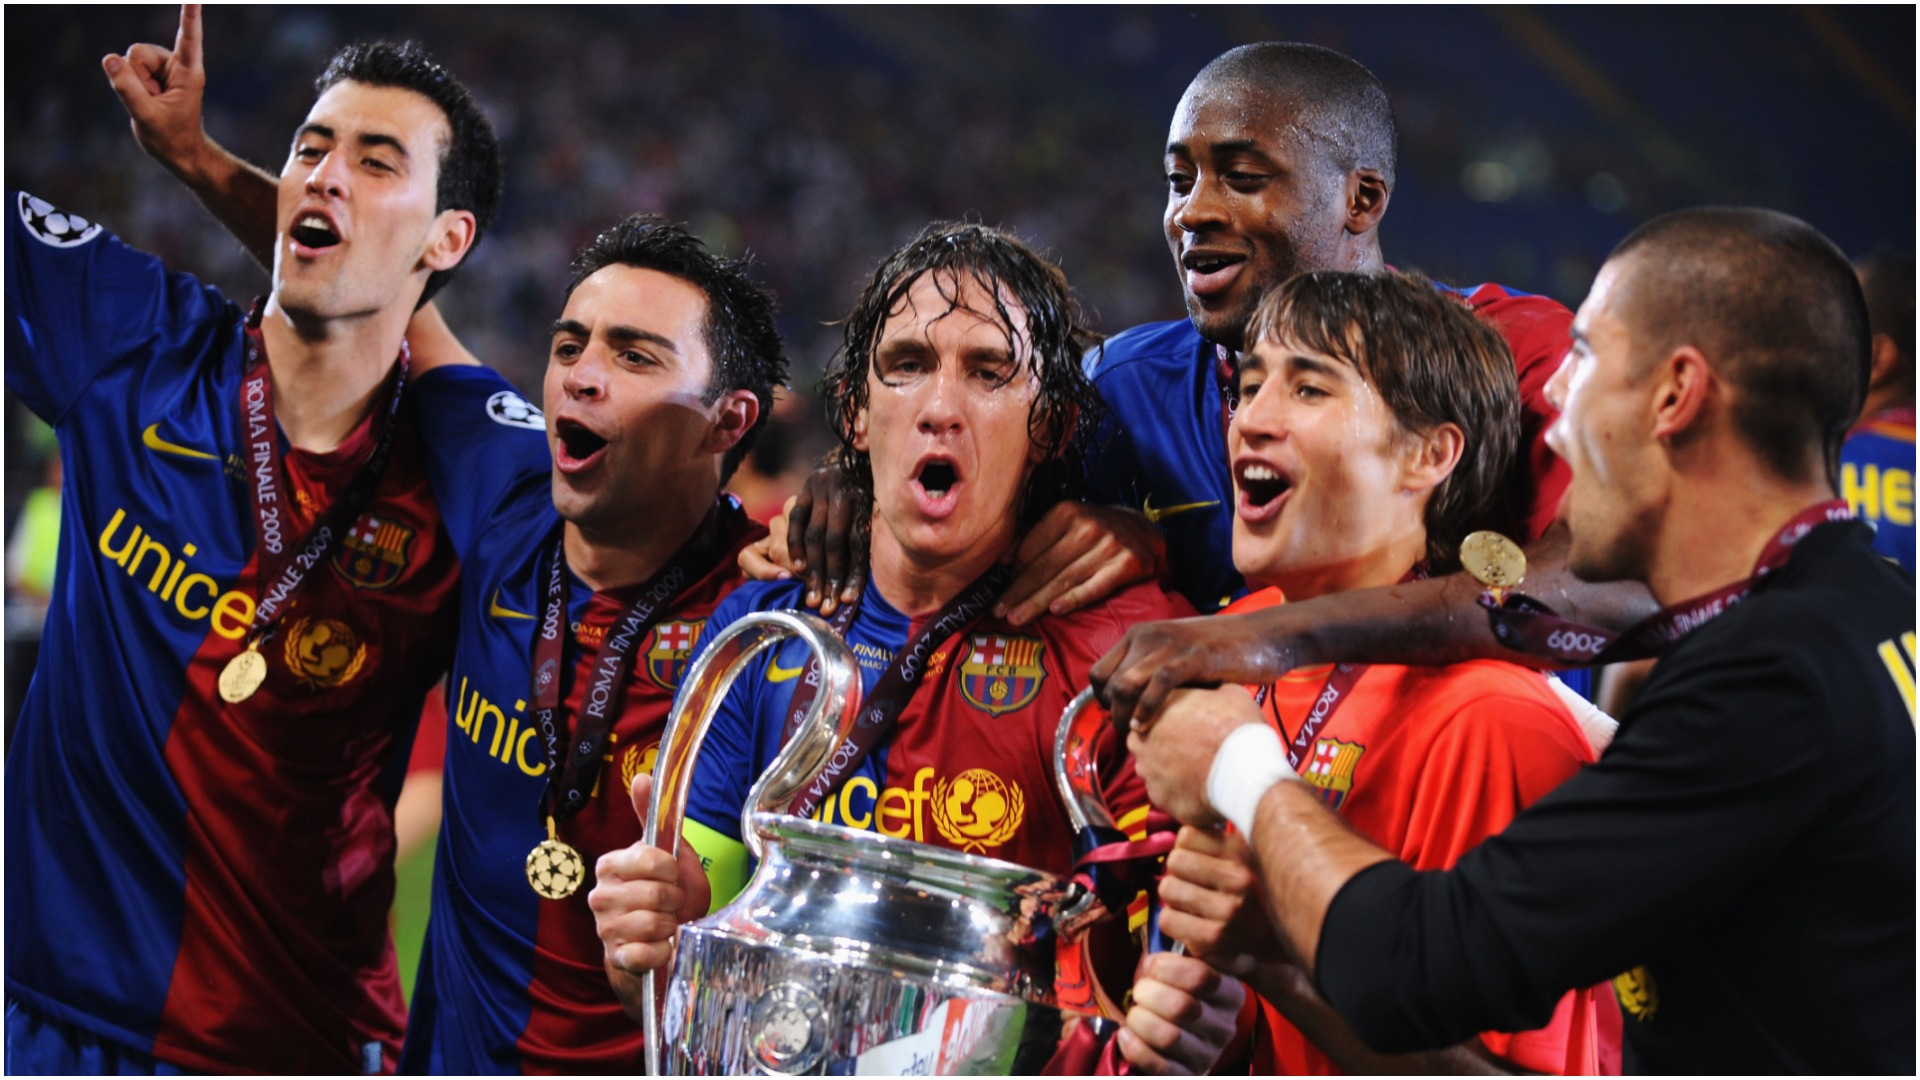 Centre-back Toure & Messi's breakthrough year - Barcelona's 2009 Champions League winners